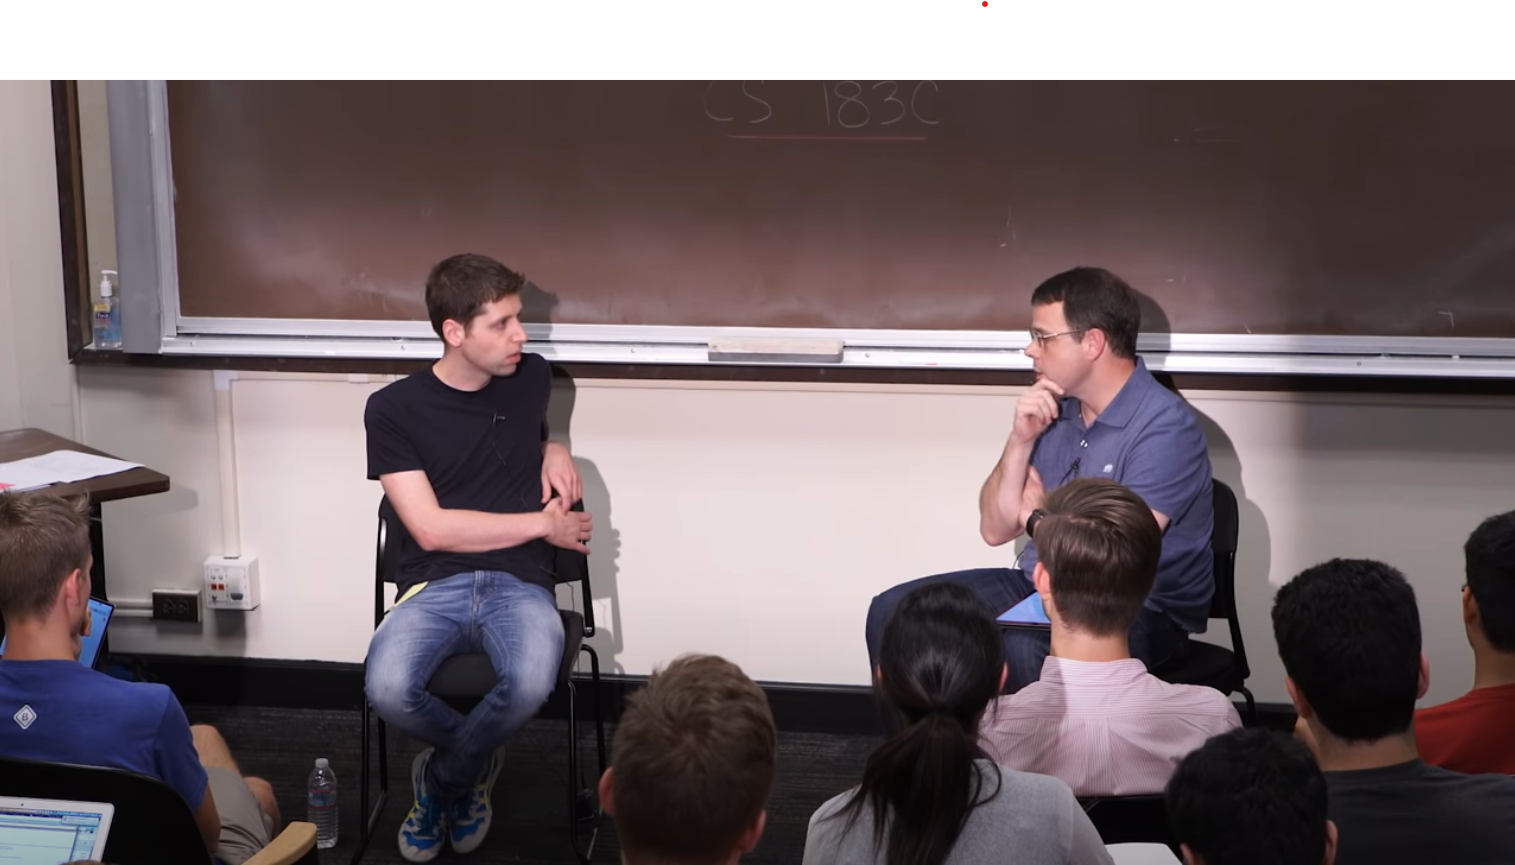 Sam Altman on Y Combinator, startups, founders, ideas and funding